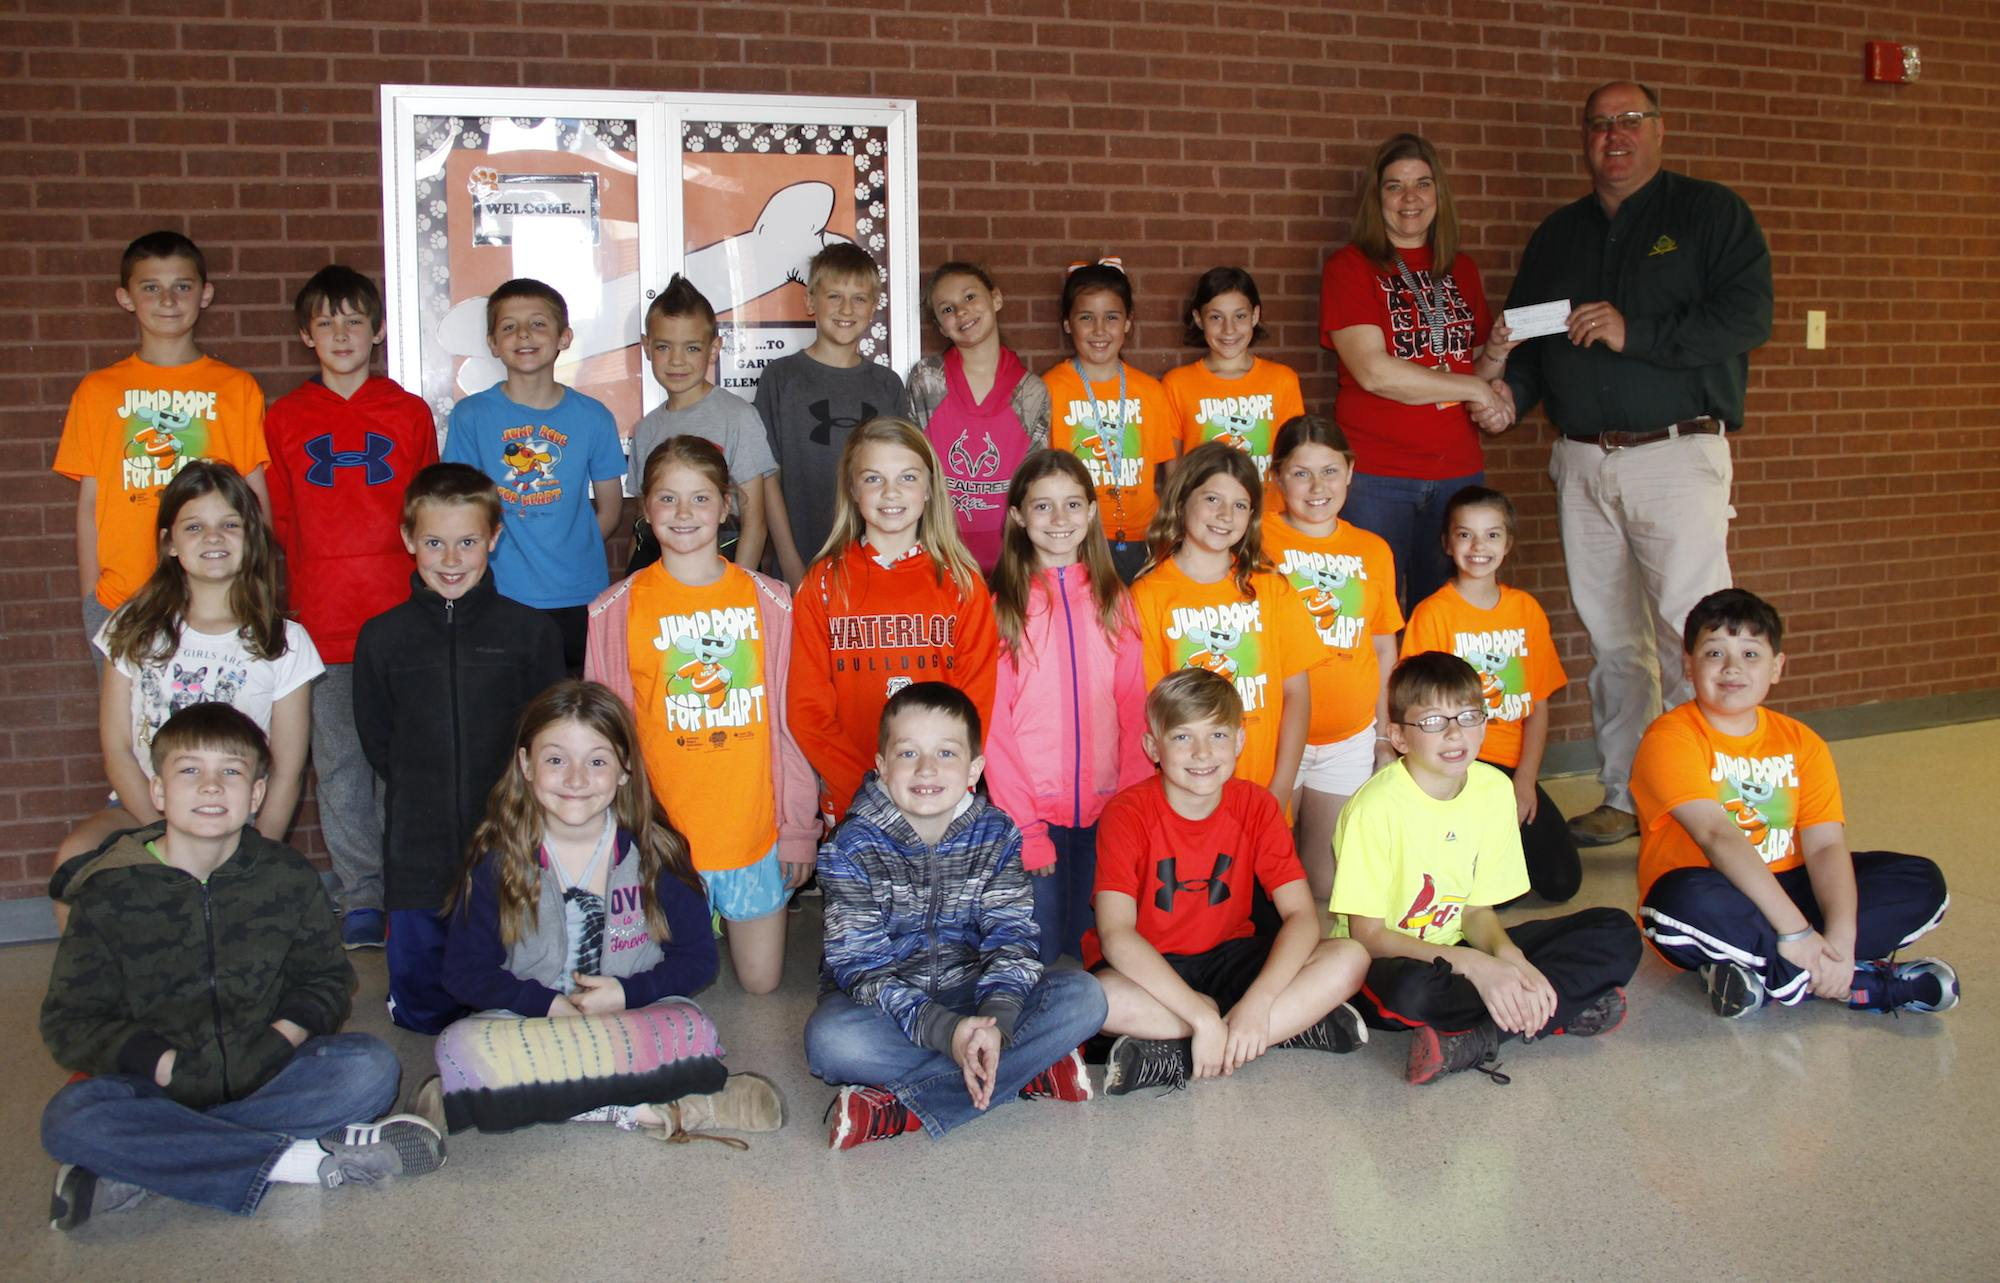 Waterloo Optimist Club Helps Send 4th Grade To State Capital